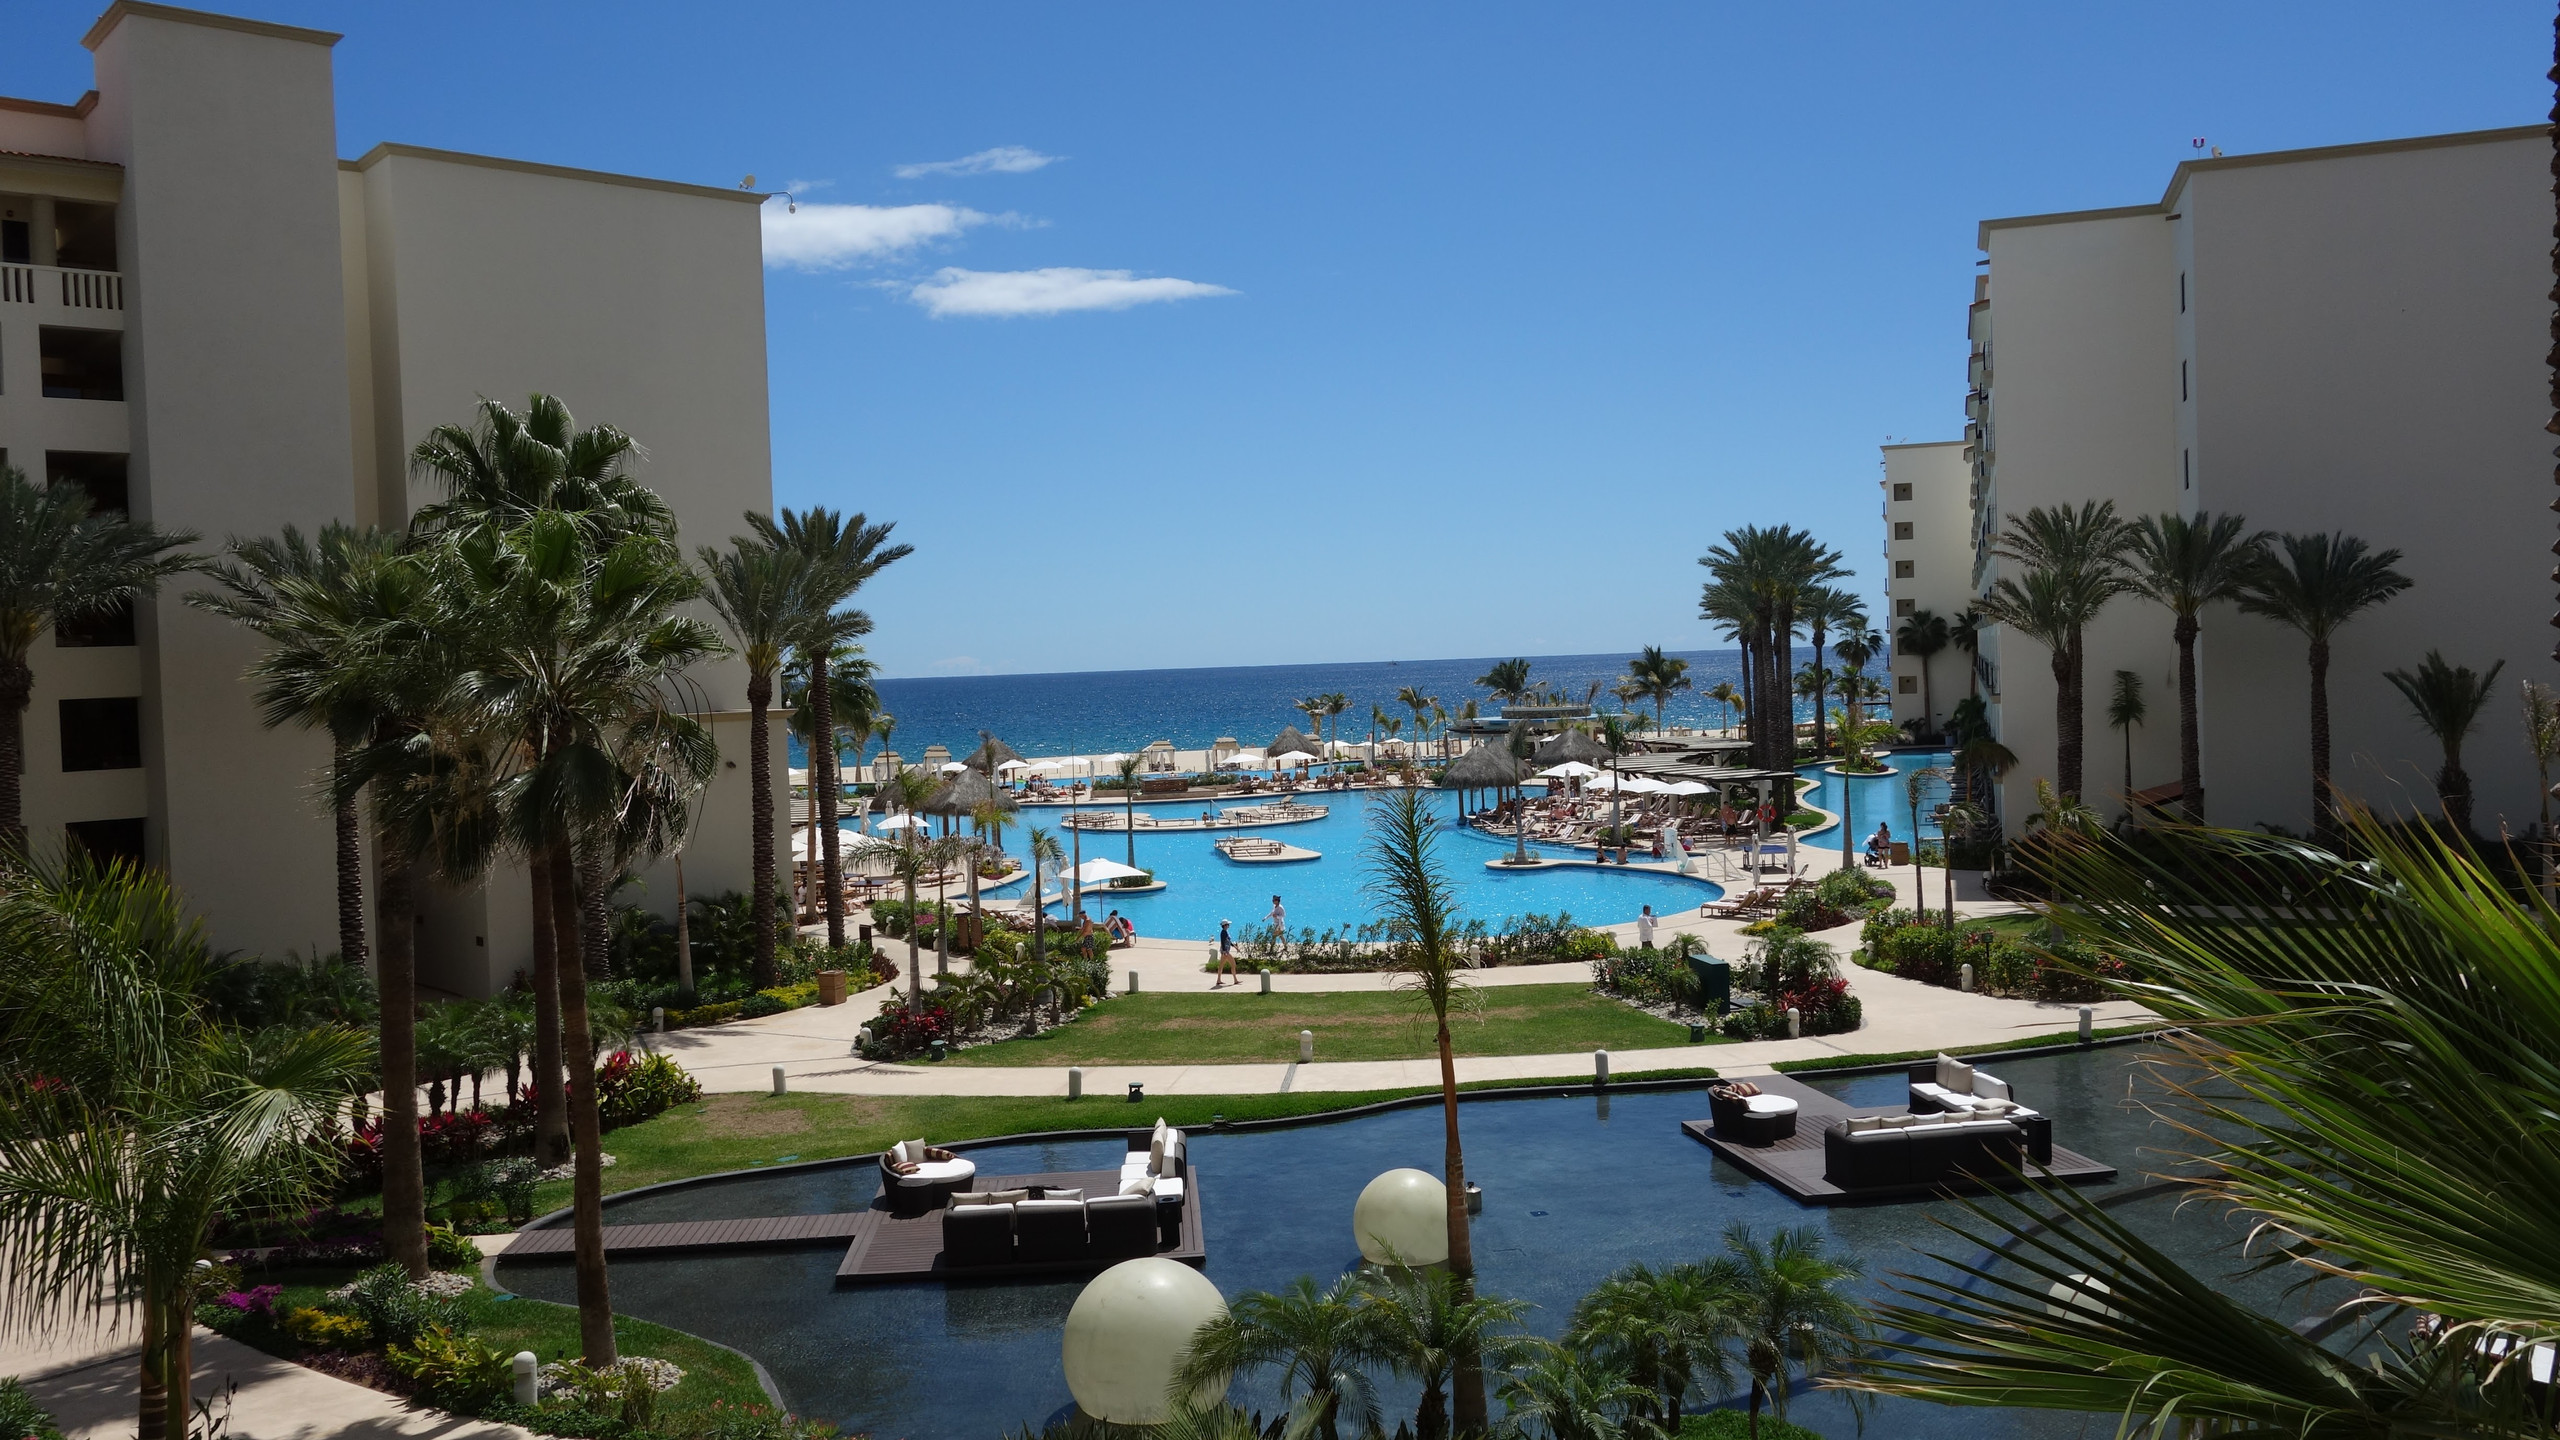 This is the view of the resort from the lobby.